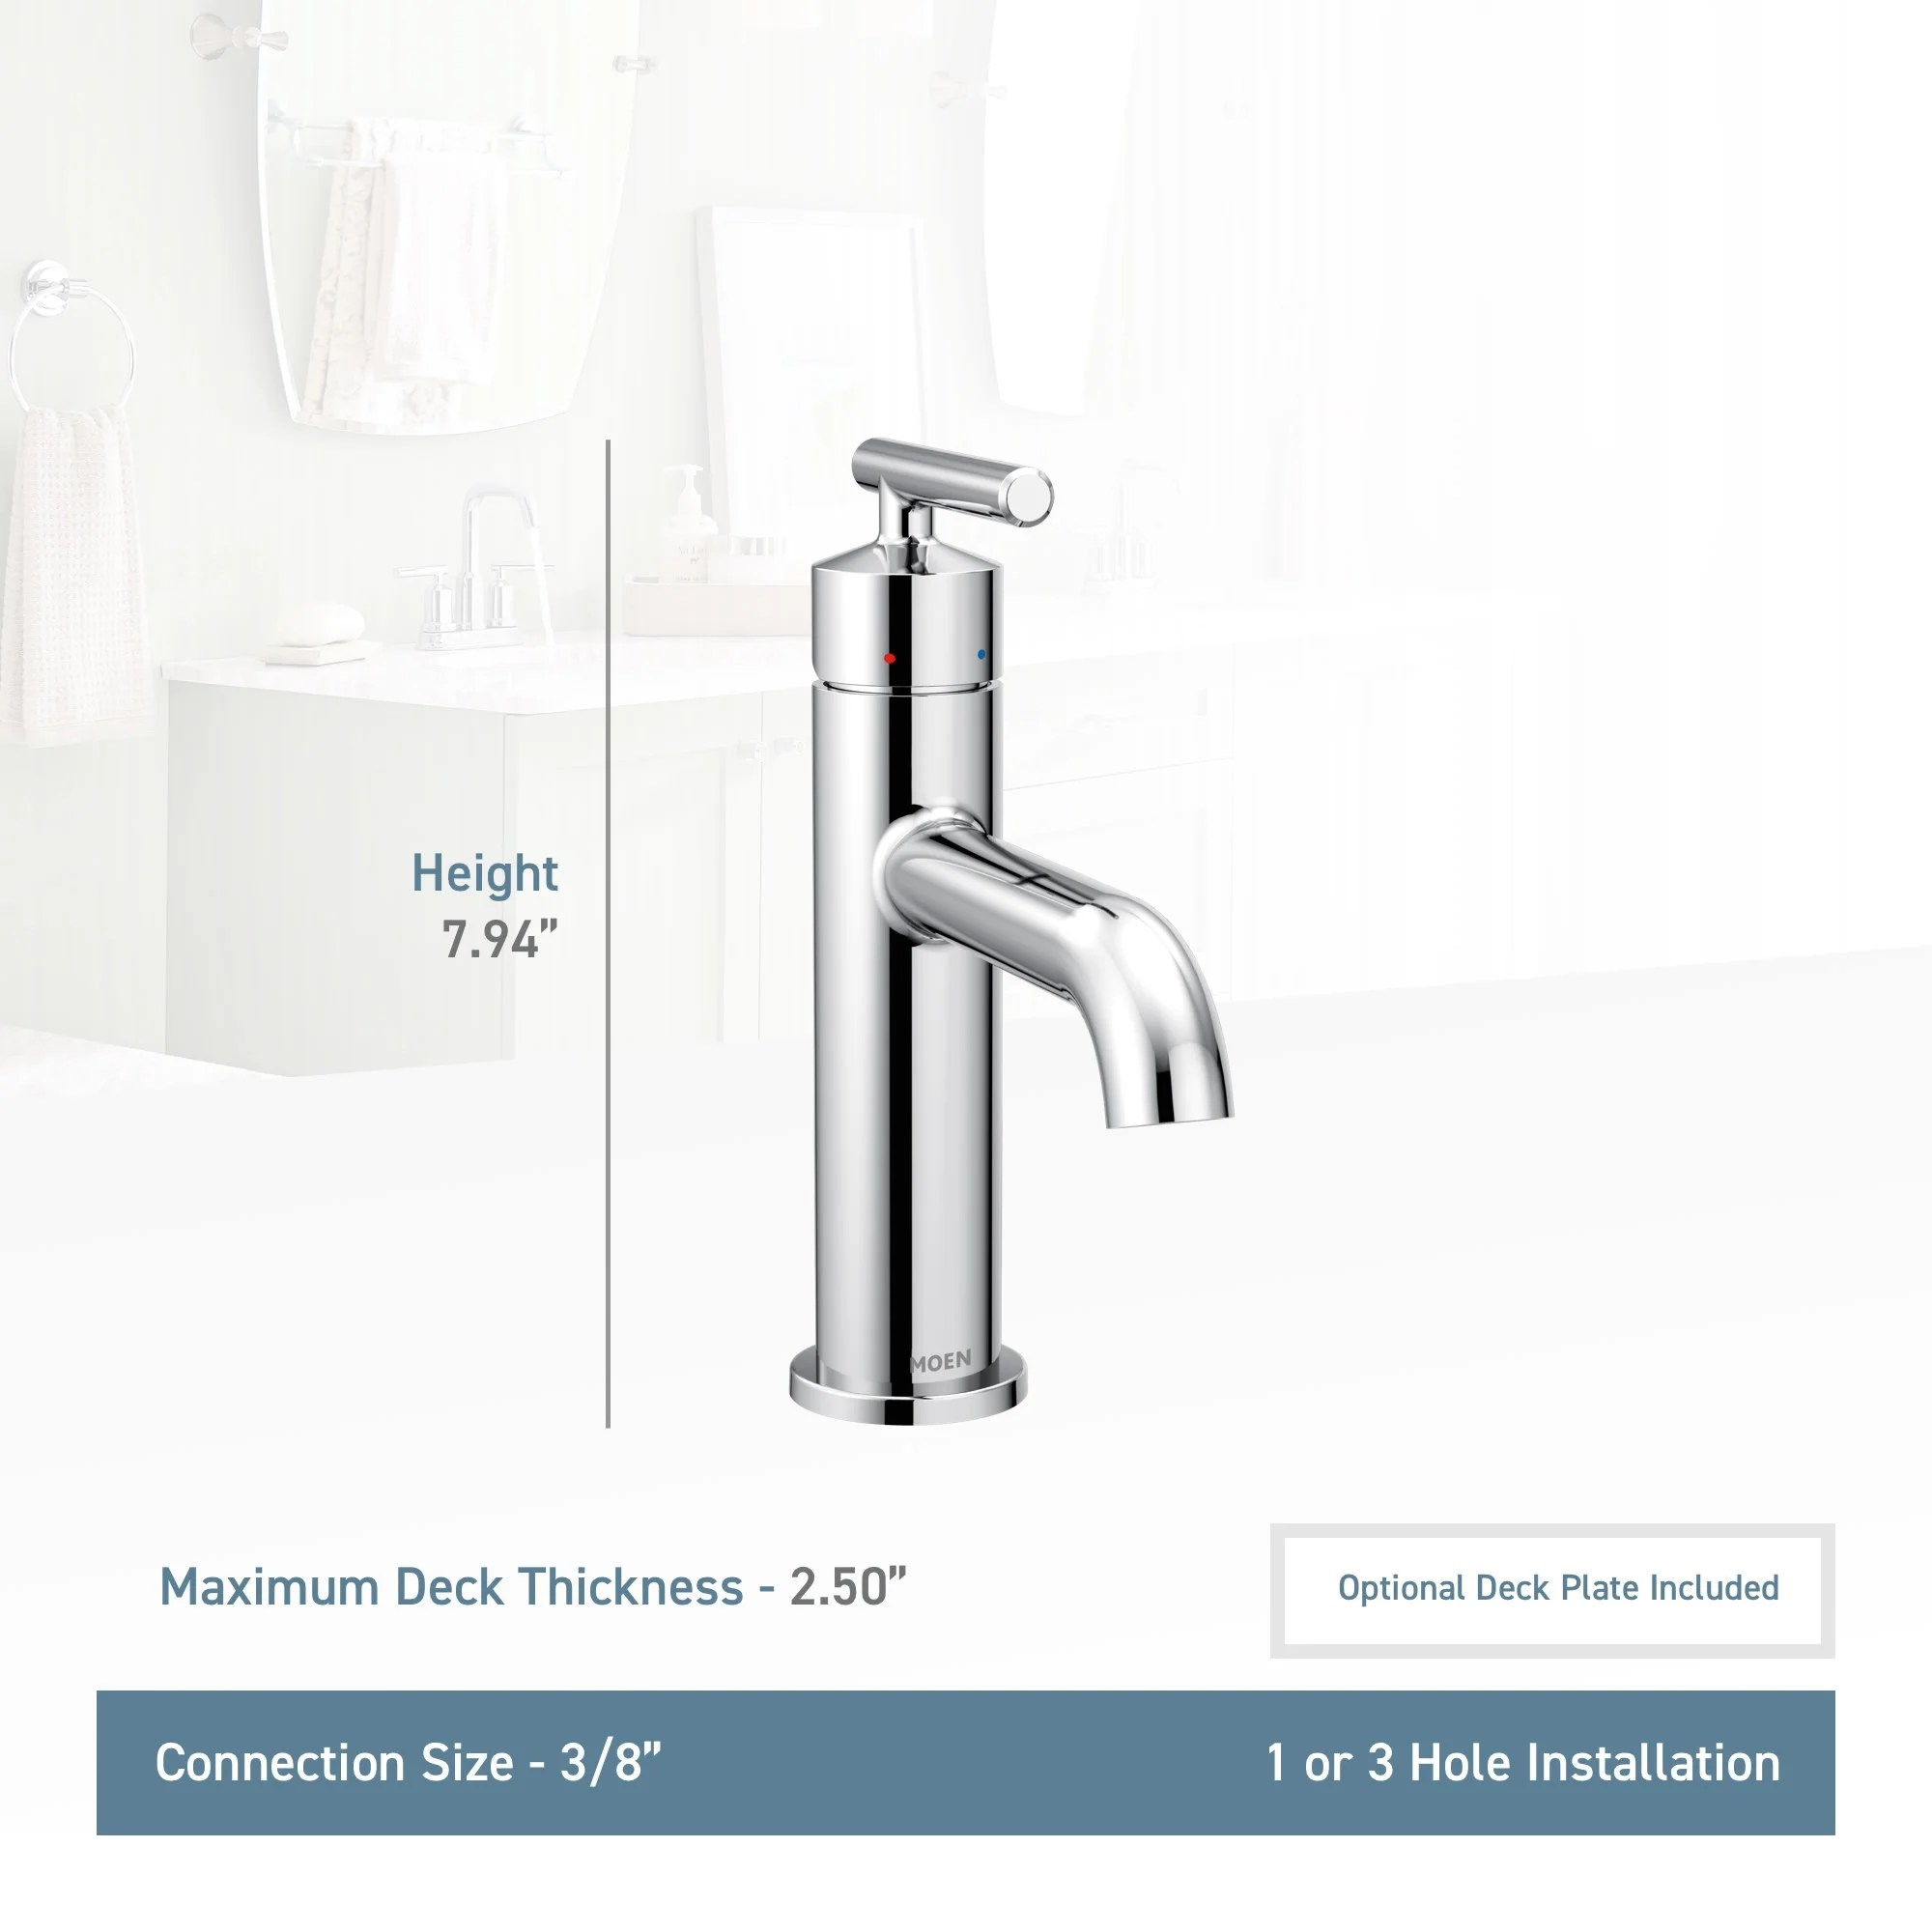 Bathroom Sink Faucets Moen 6145 Gibson 1 2 Gpm Single Hole Bathroom Sink Faucet With Pop Up Drain Assembly